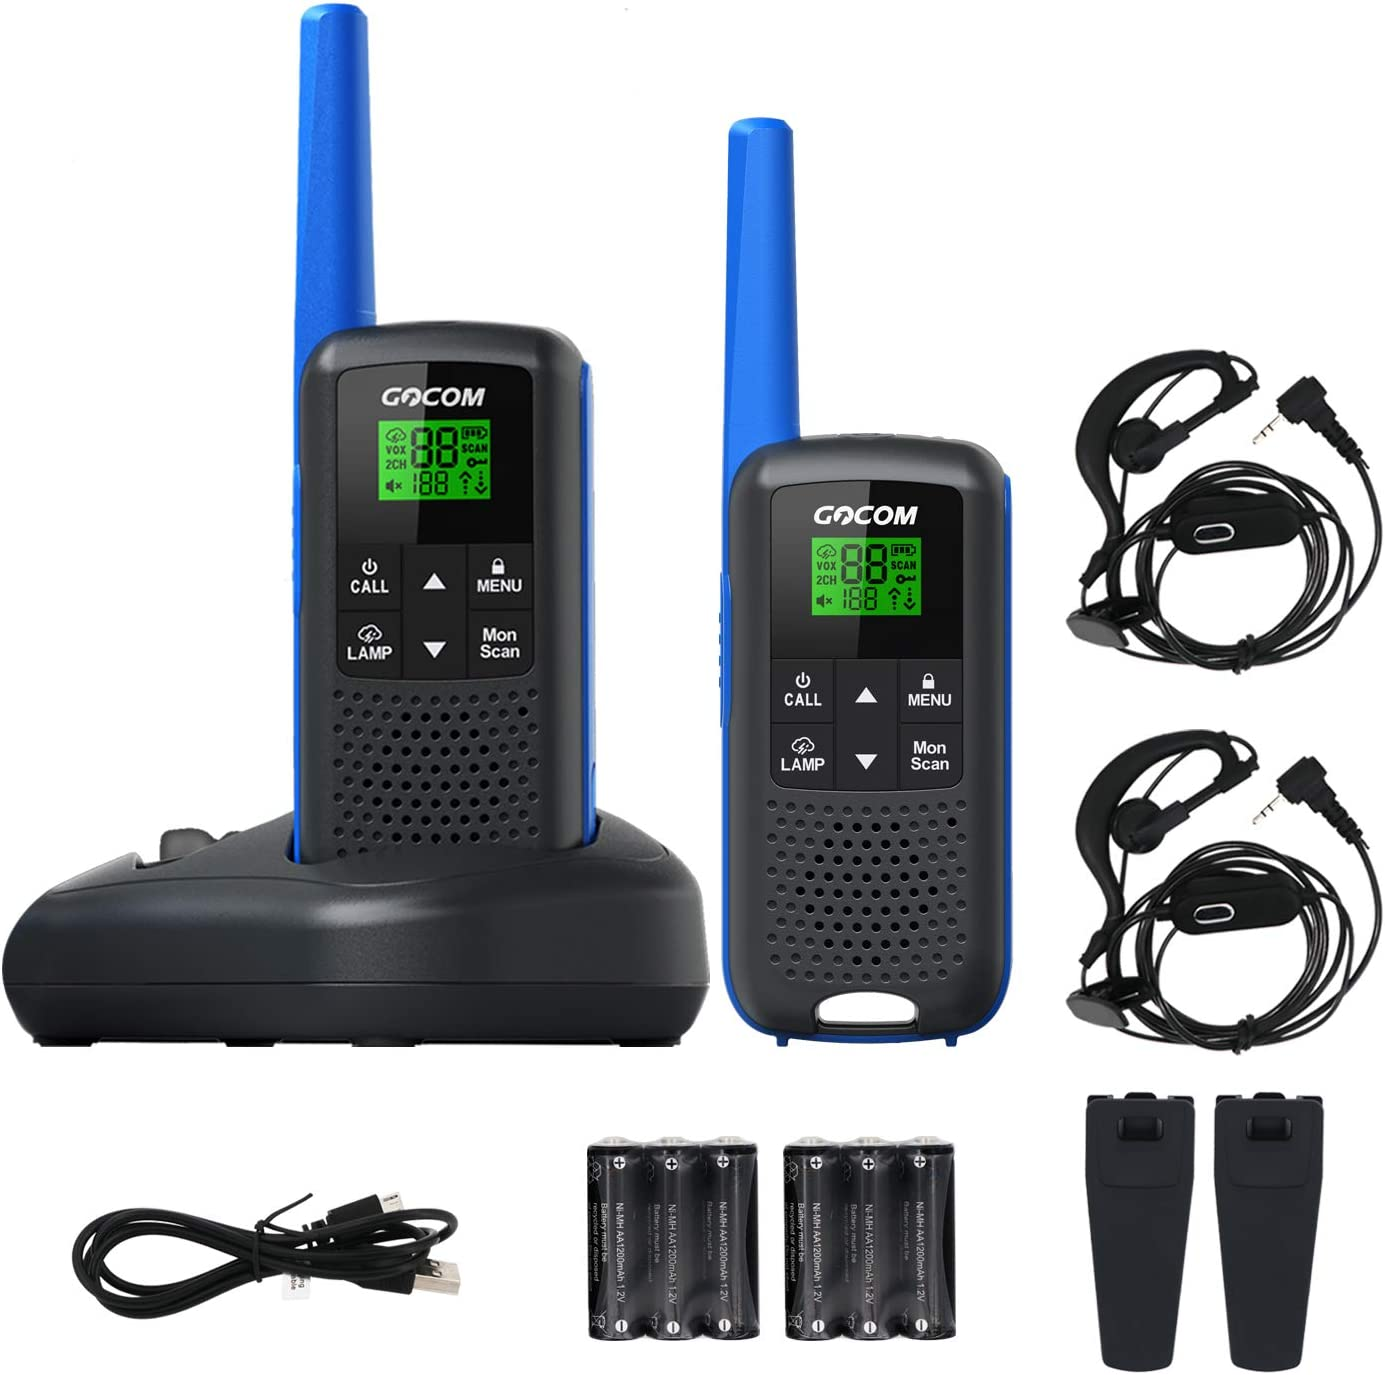 GOCOM Walkie Talkies for Adults Two Way Radios, 2,662 Channels 32 Miles Long Range Walkie Talkies Rechargeable, VOX Scan, Weather Scan+Alert, LED Light for Outdoor Rowing Biking Hiking Camping Travel